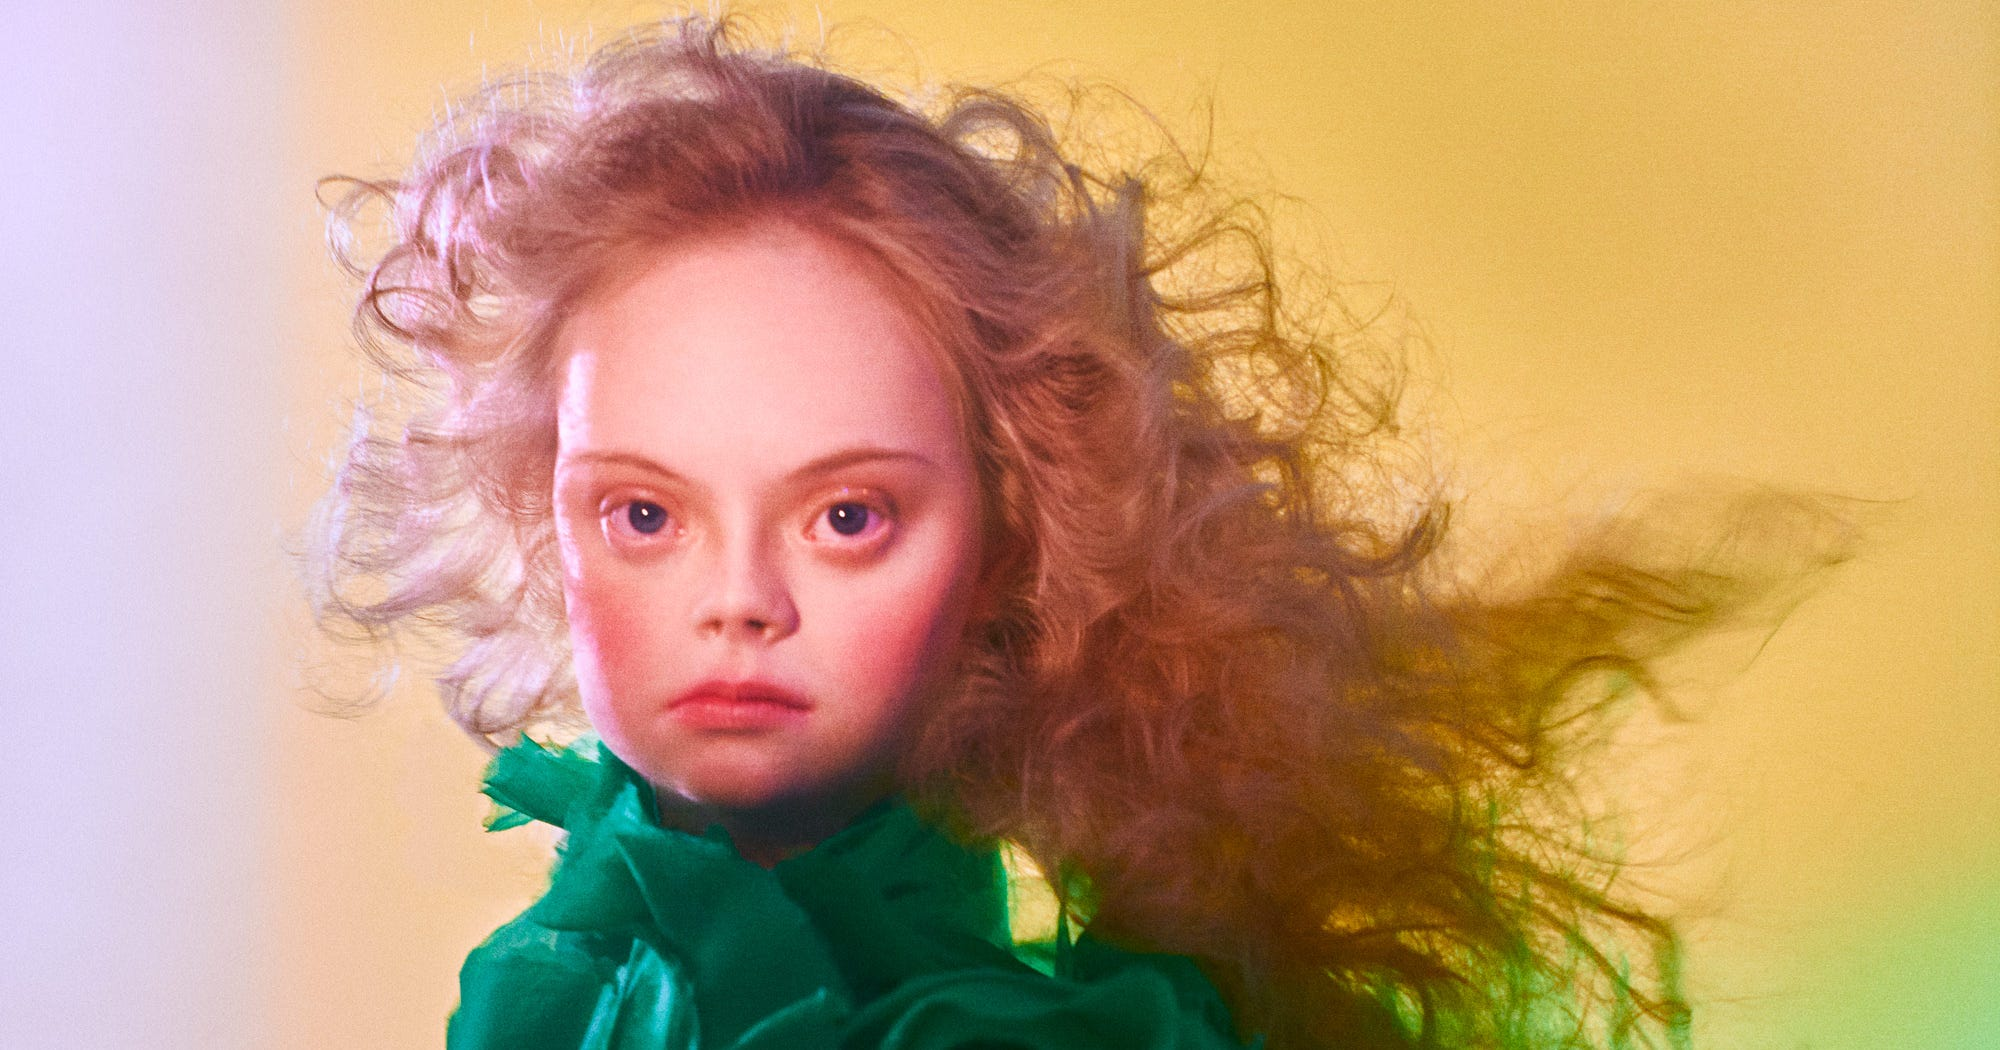 The Radical Beauty Project: Changing How We See People With Down's Syndrome